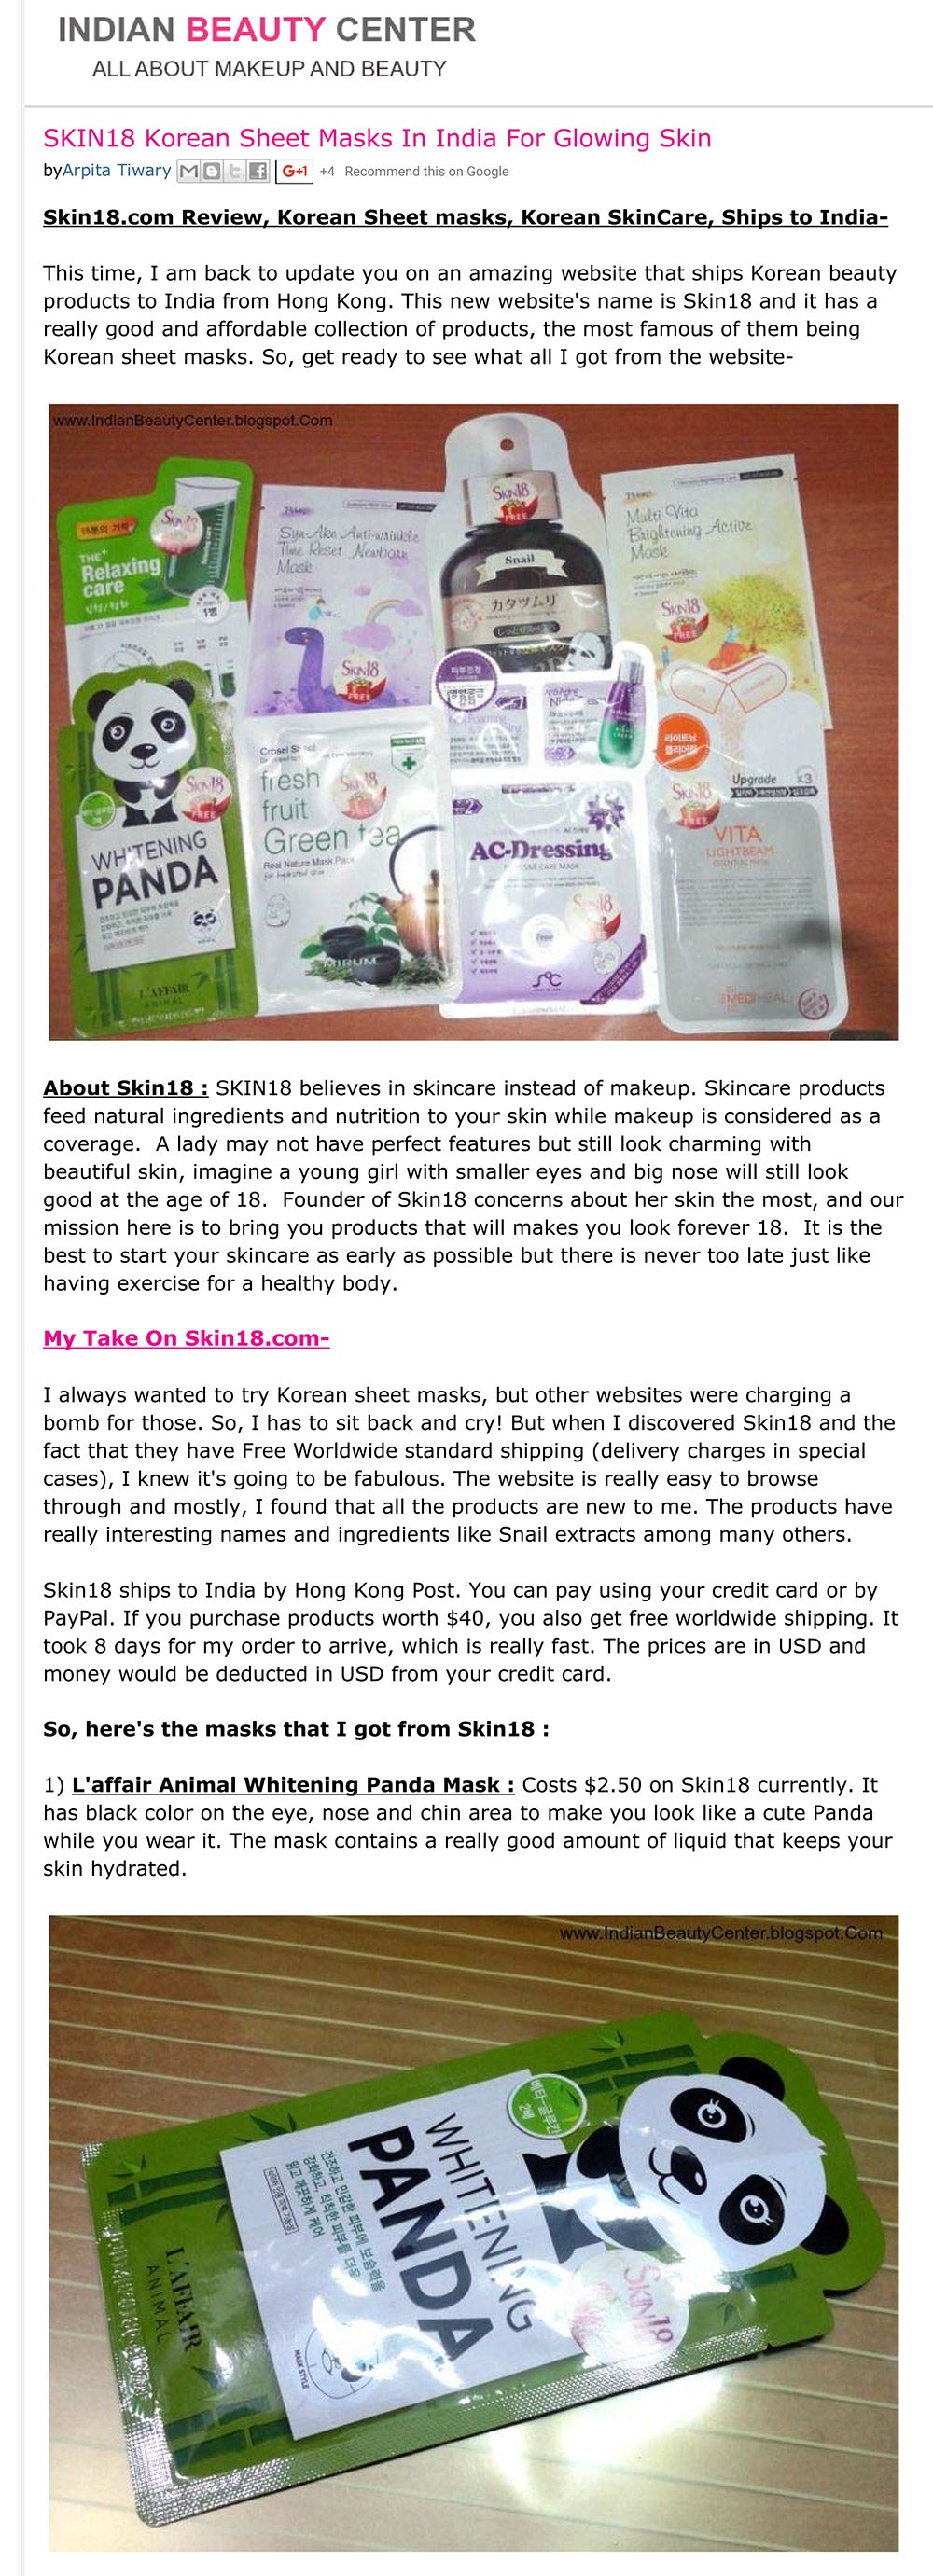 Skin18.com Review, Korean Sheet masks, Korean SkinCare, Ships to India-